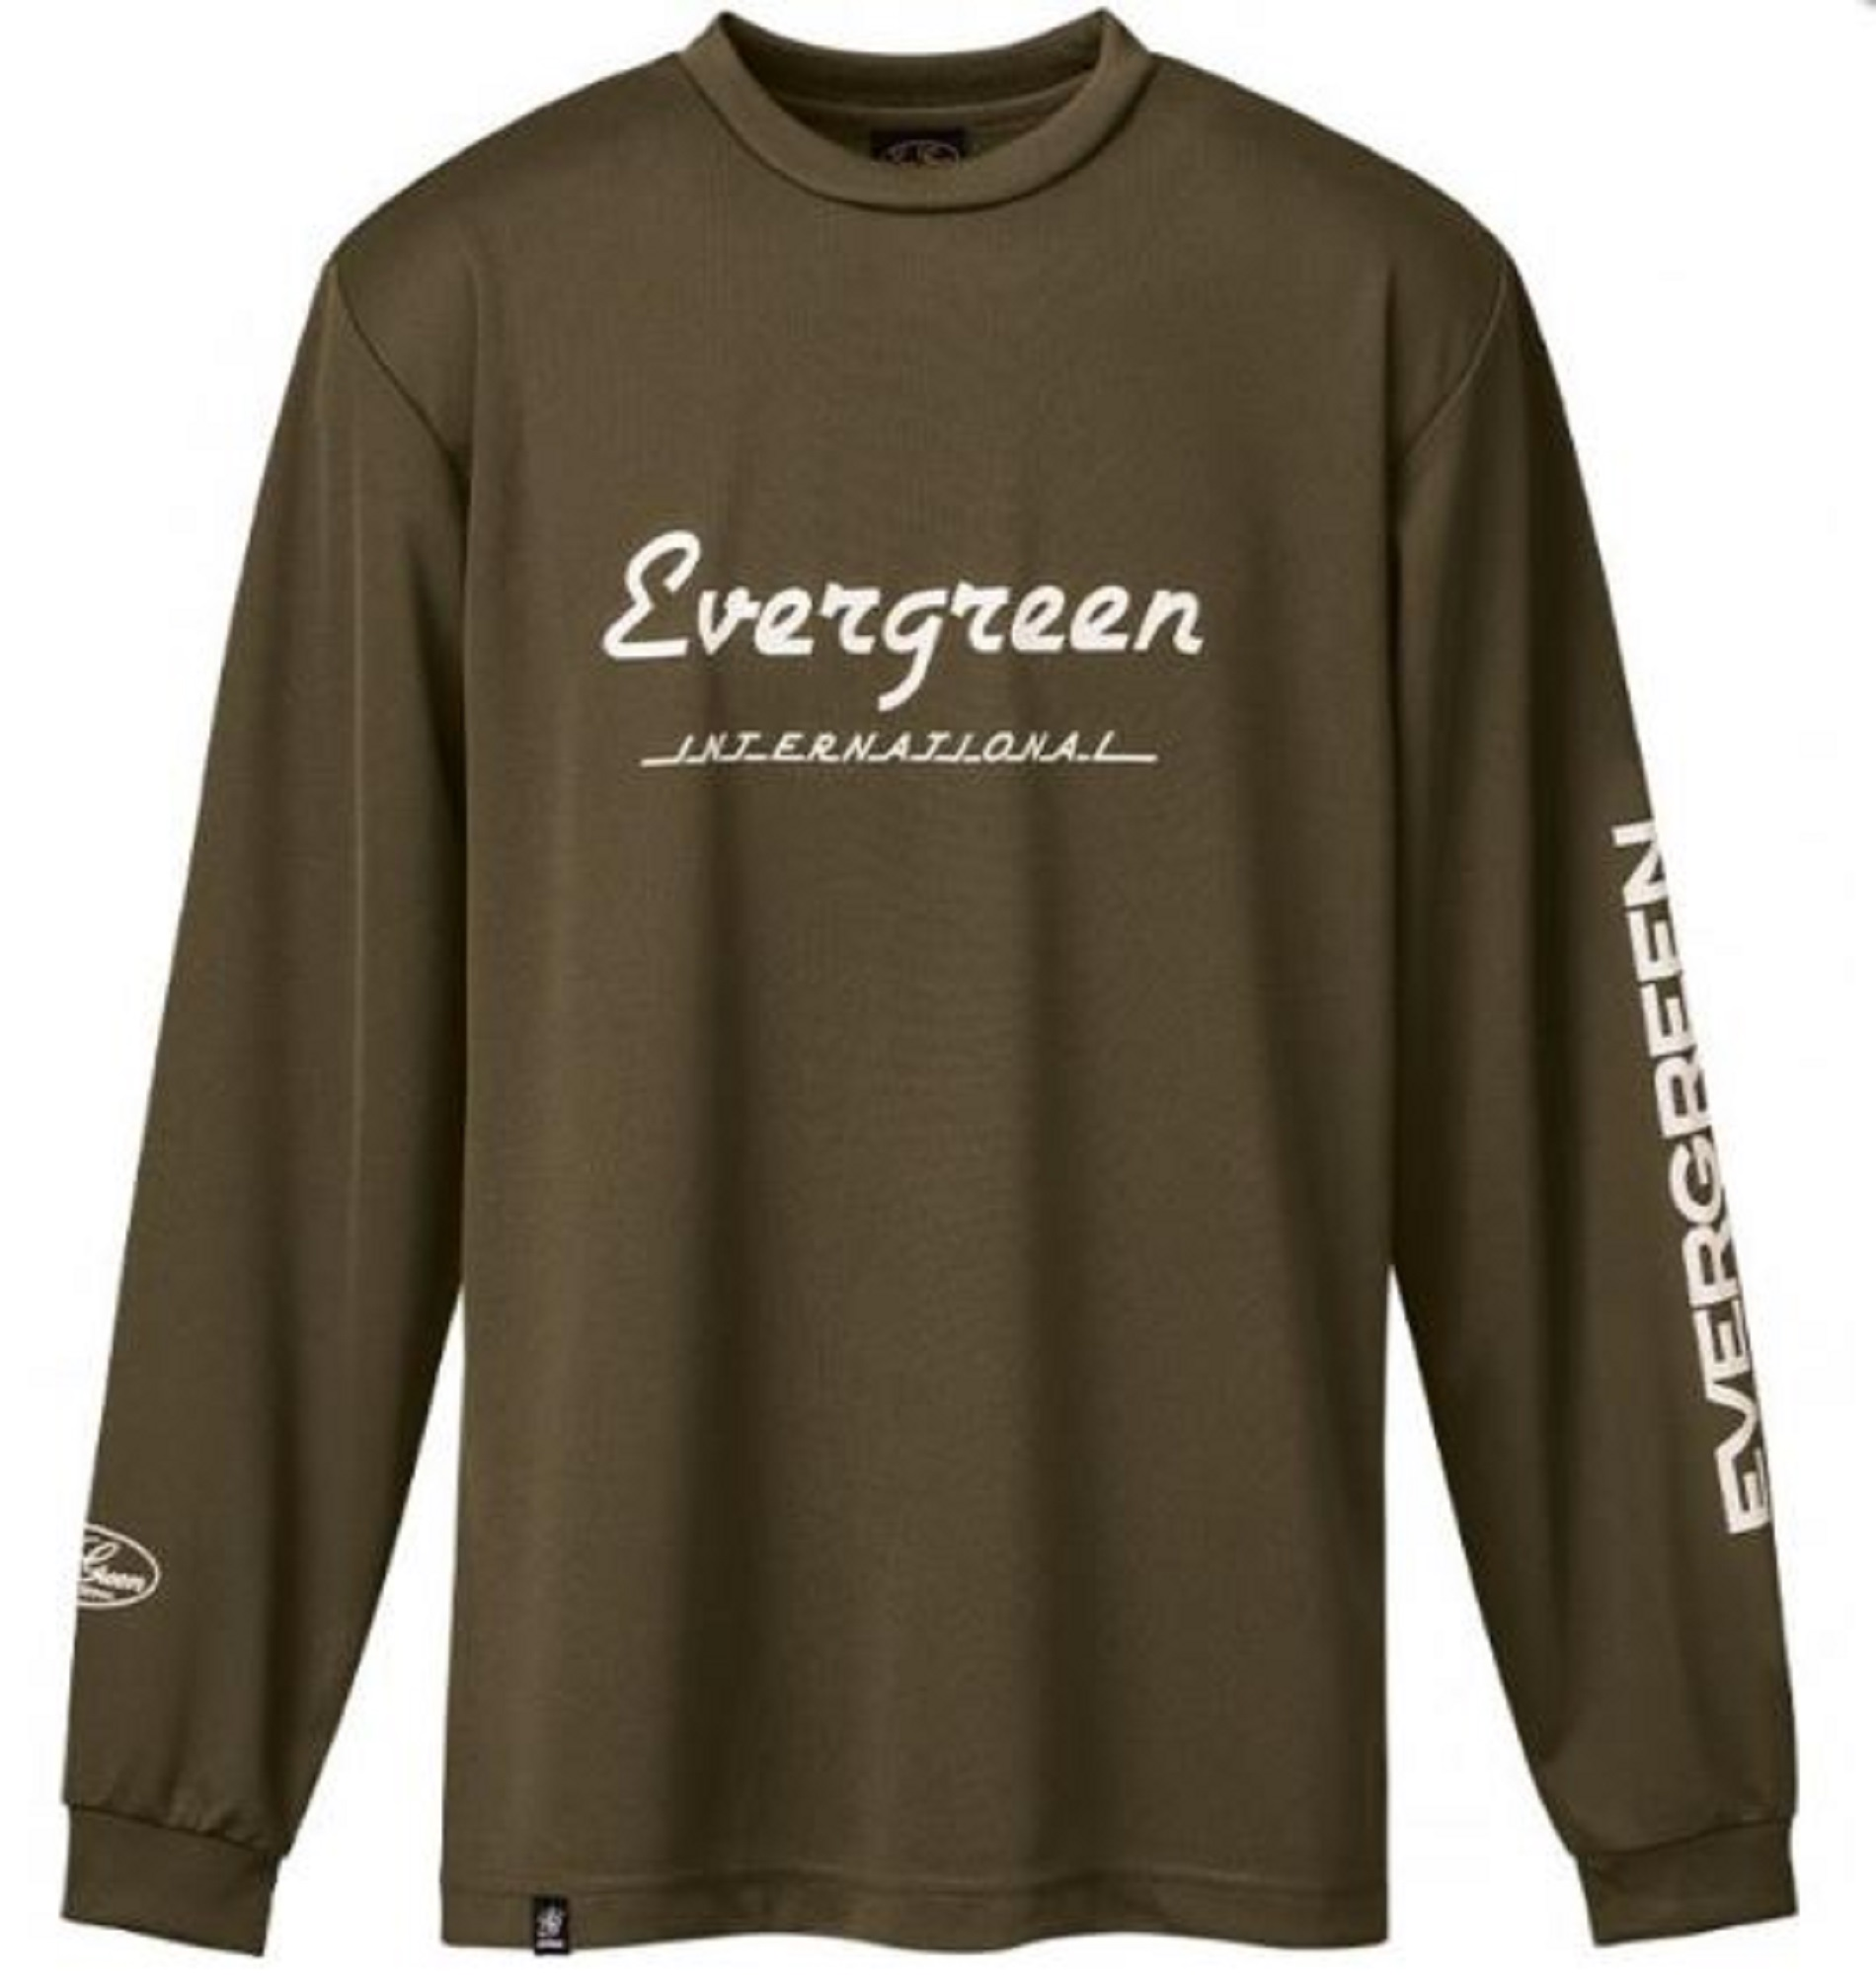 Evergreen T-Shirt Dry Fit Long Sleeve F Type Size M Army (0037)